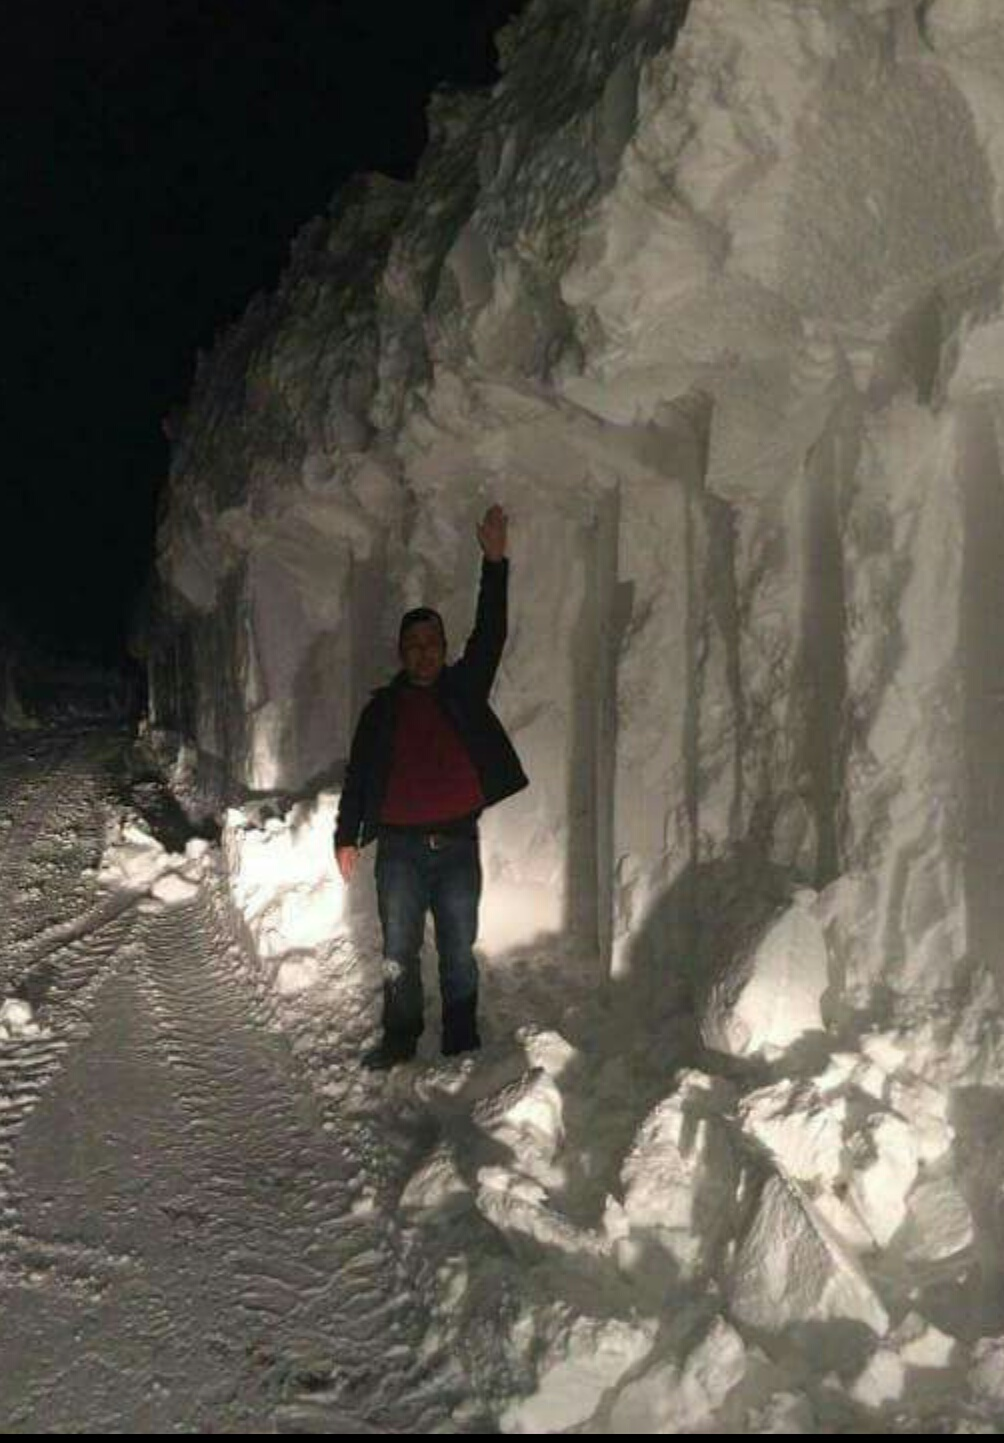 Here in PEI on the east coast of Canada, we've got 16 feet of snow in the past two months.